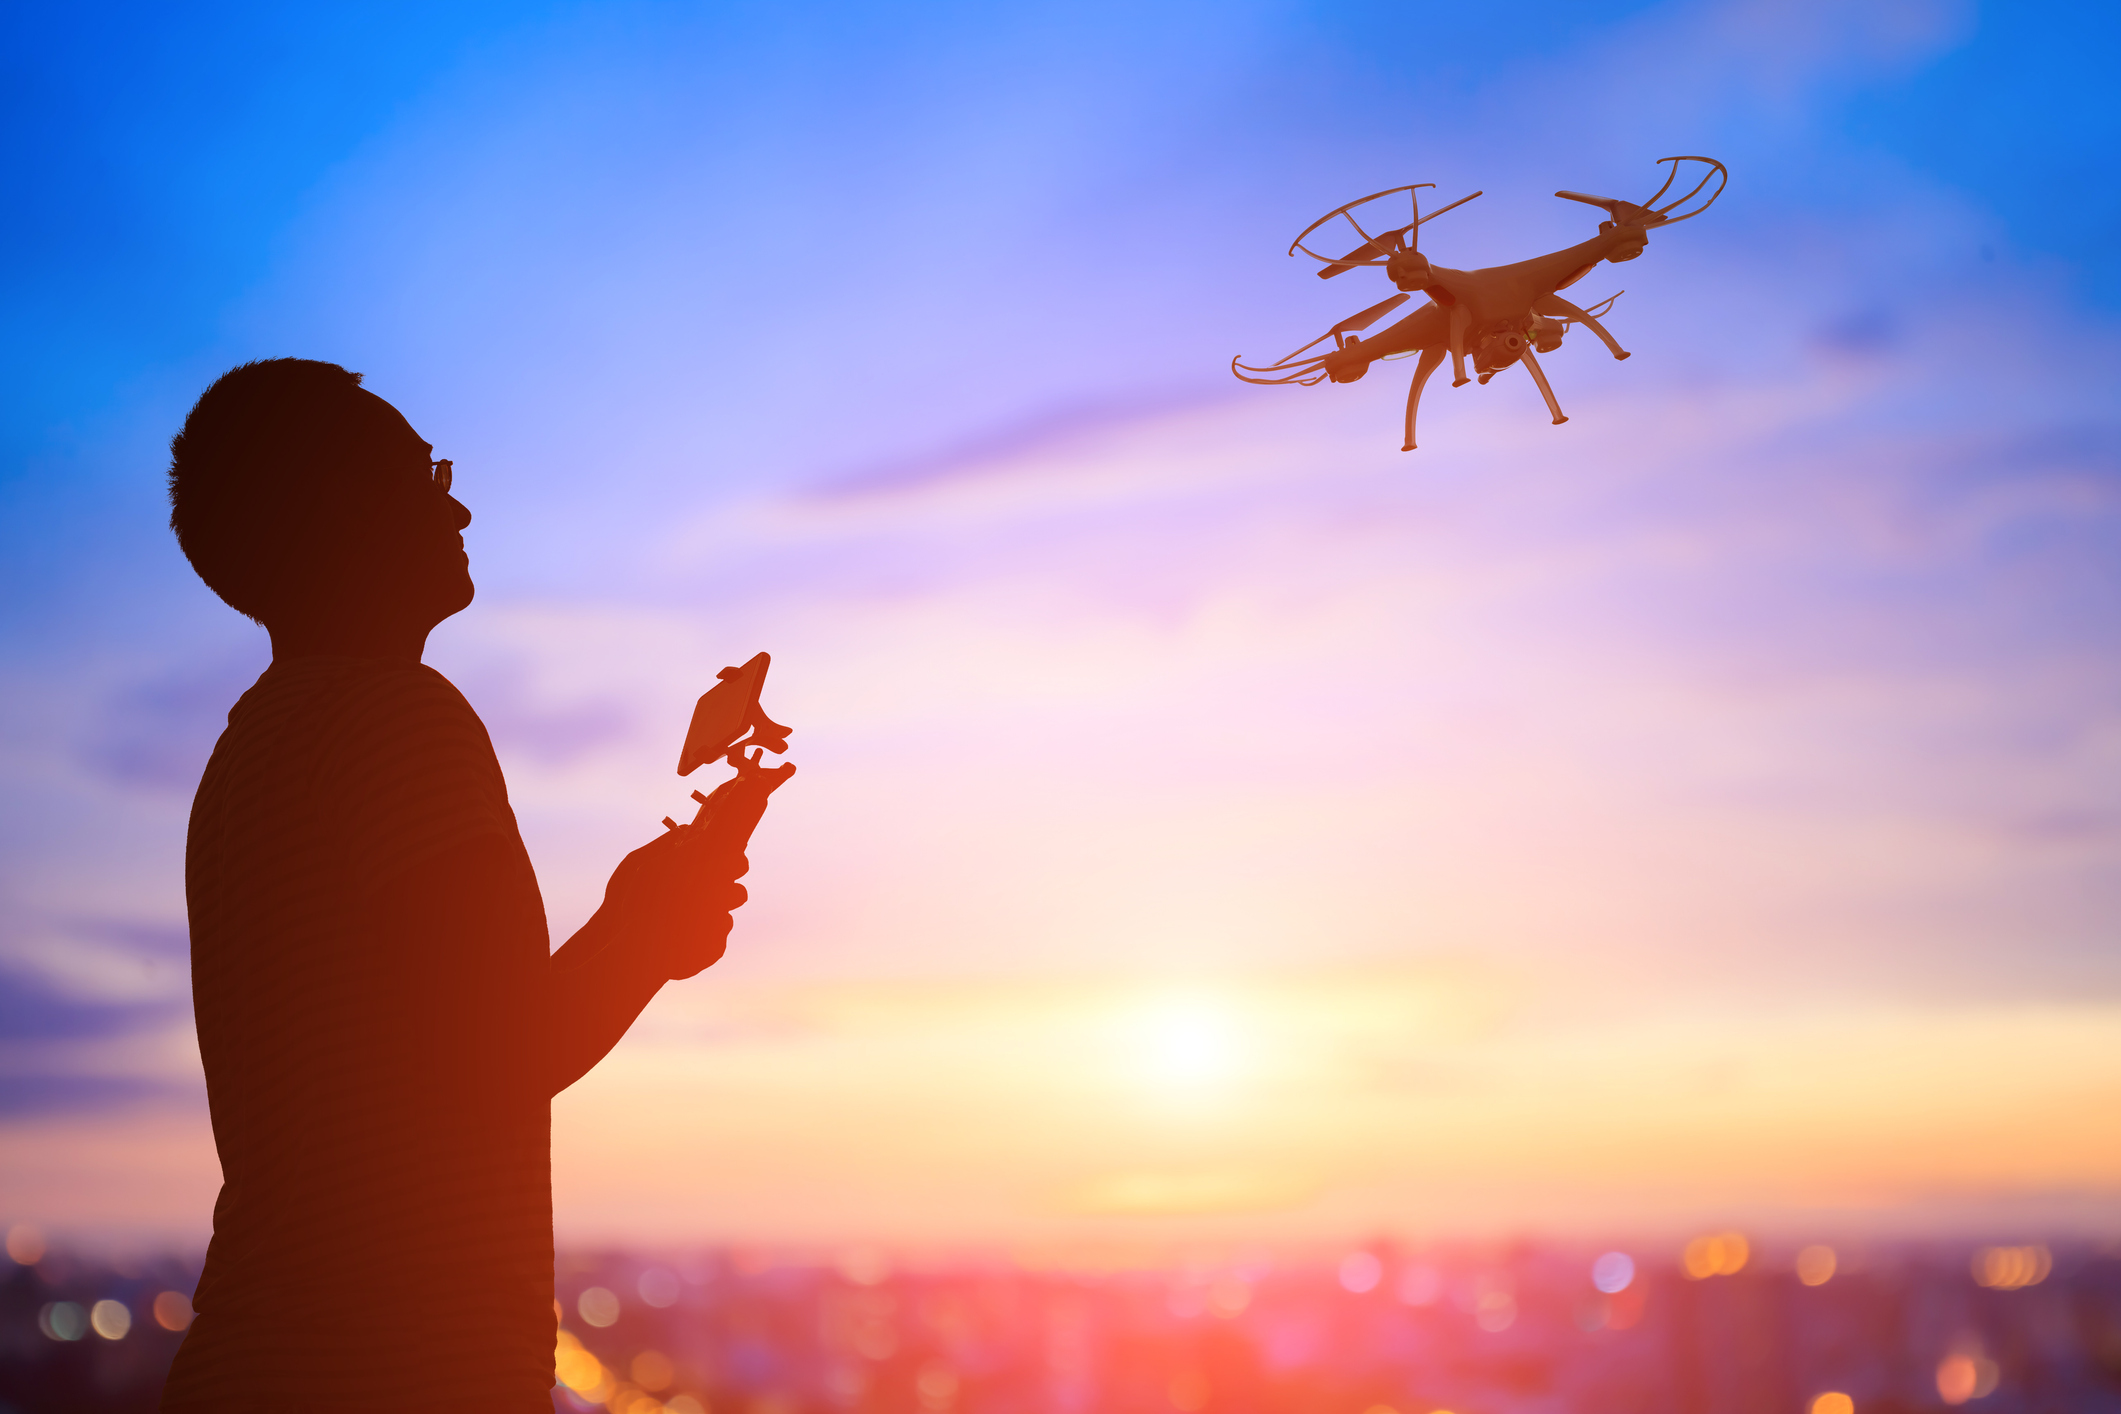 Drone Recruitment Is Here! Are You Ready to Fly?